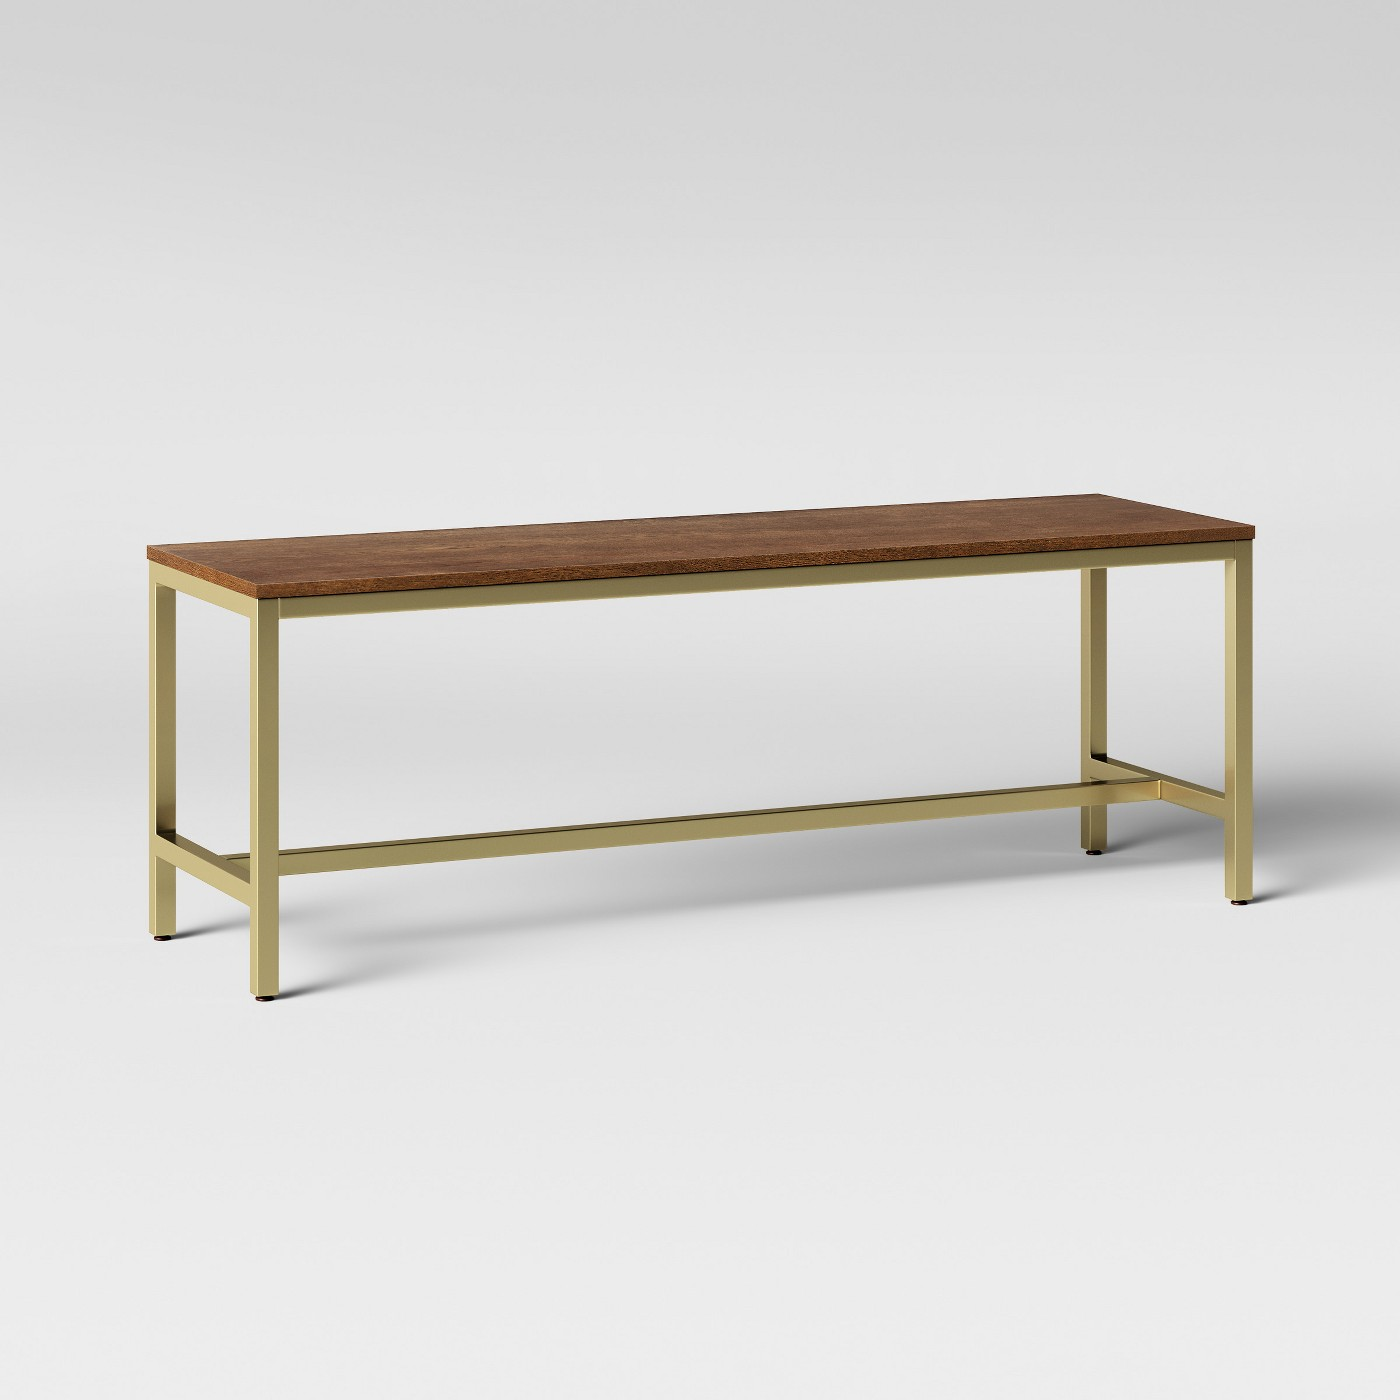 I looove this one from Target. Except the bottom crossbar wouldn't work for how we store some of our odds and ends below our current bench.